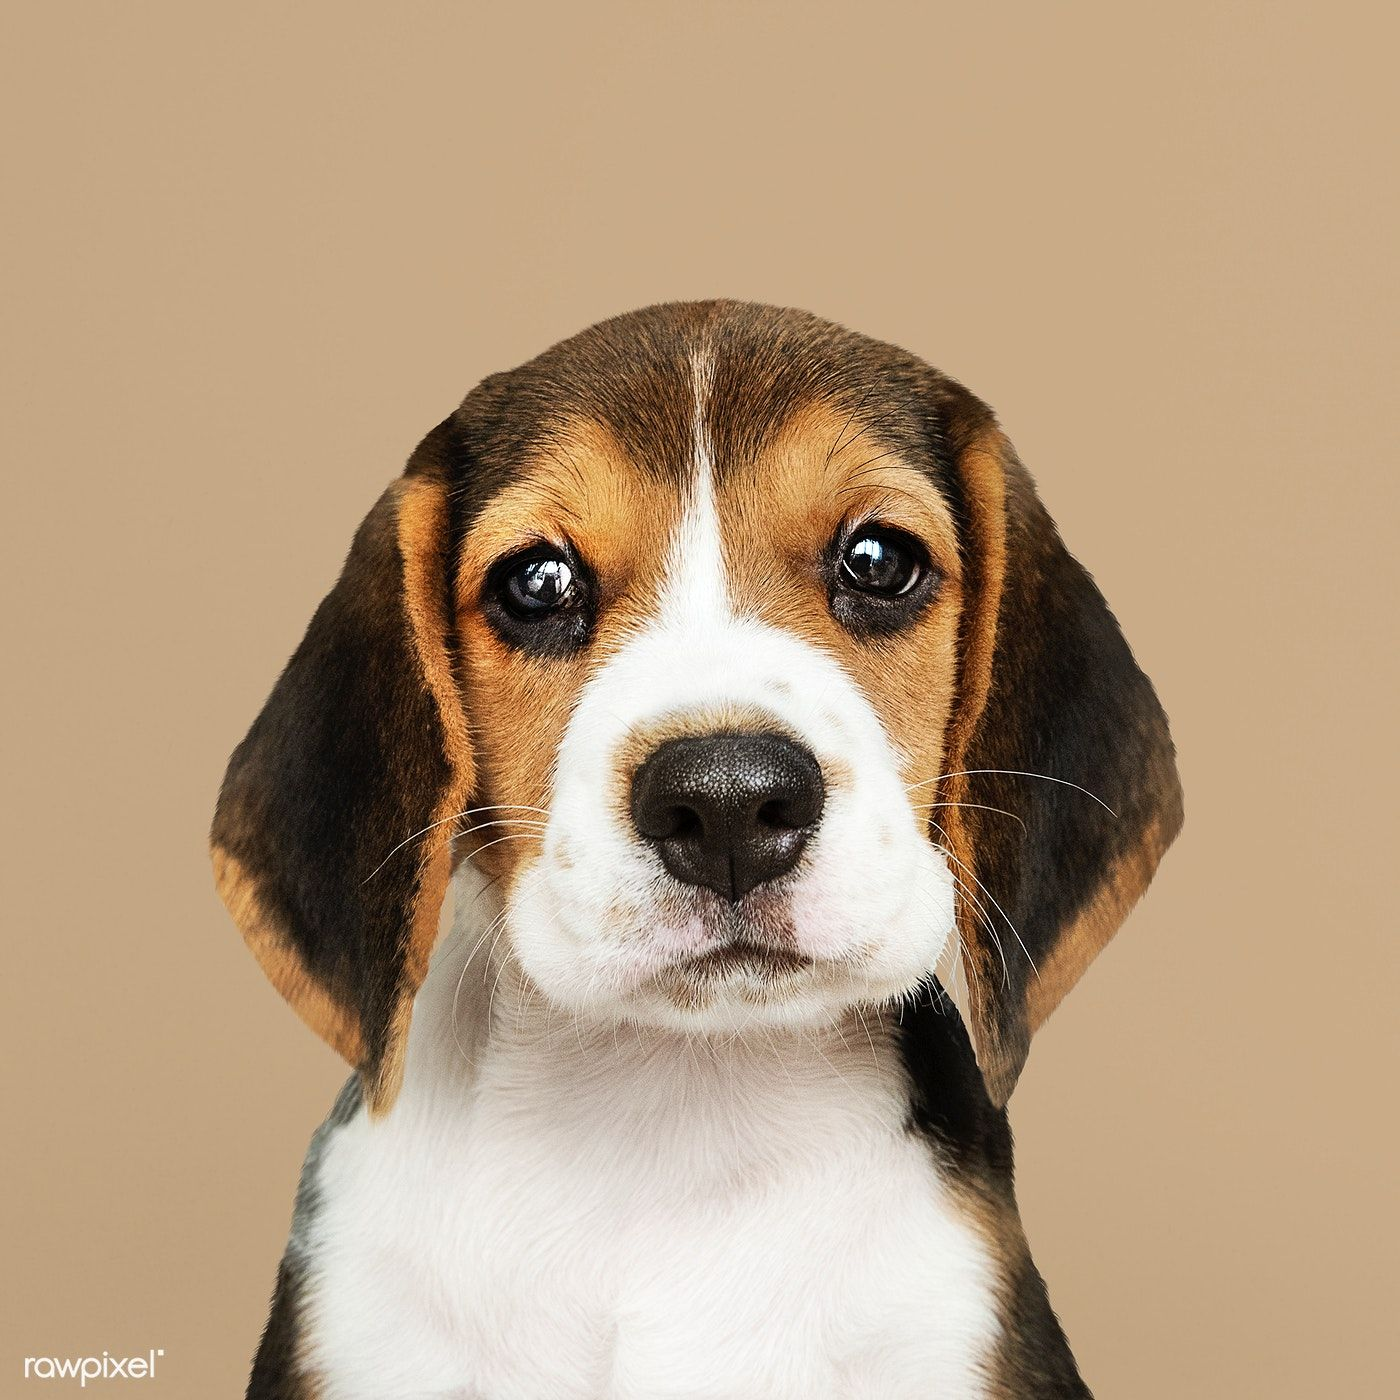 Download Premium Photo Of Adorable Beagle Puppy Solo Portrait